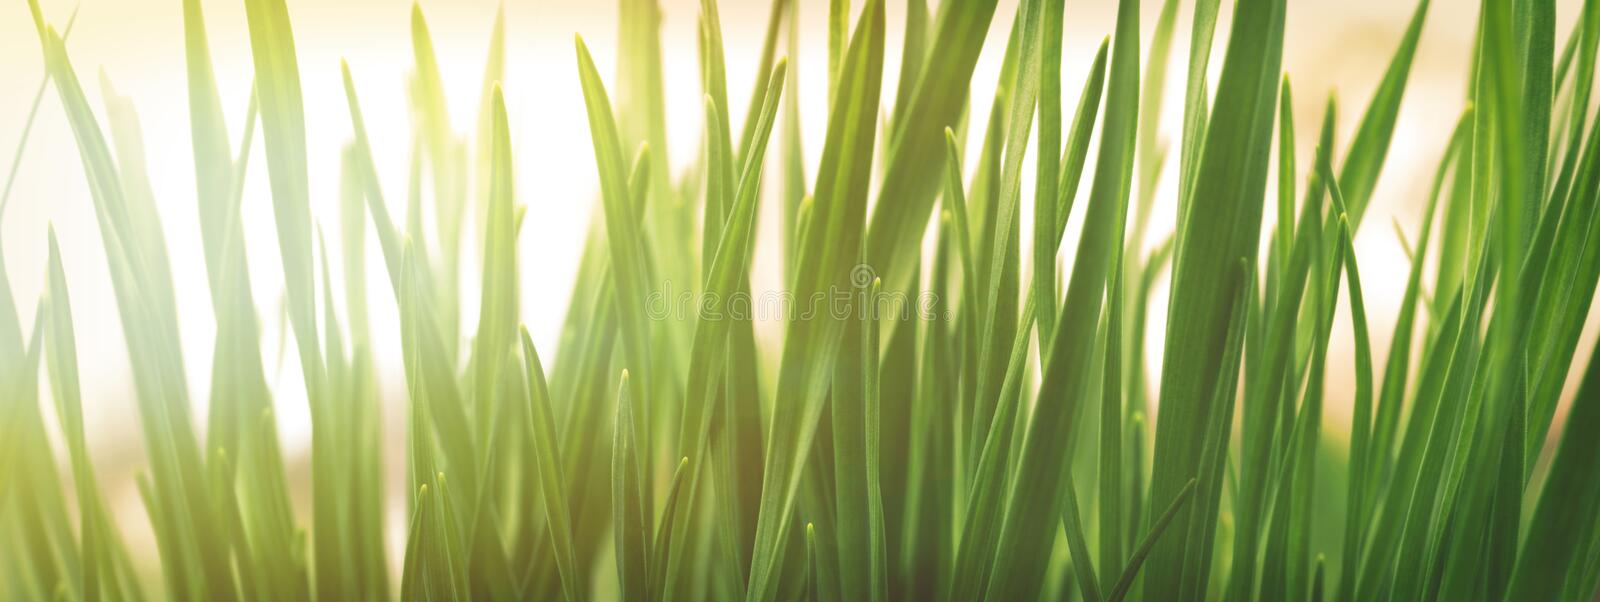 Spring or summer natural background with fresh grass stock image